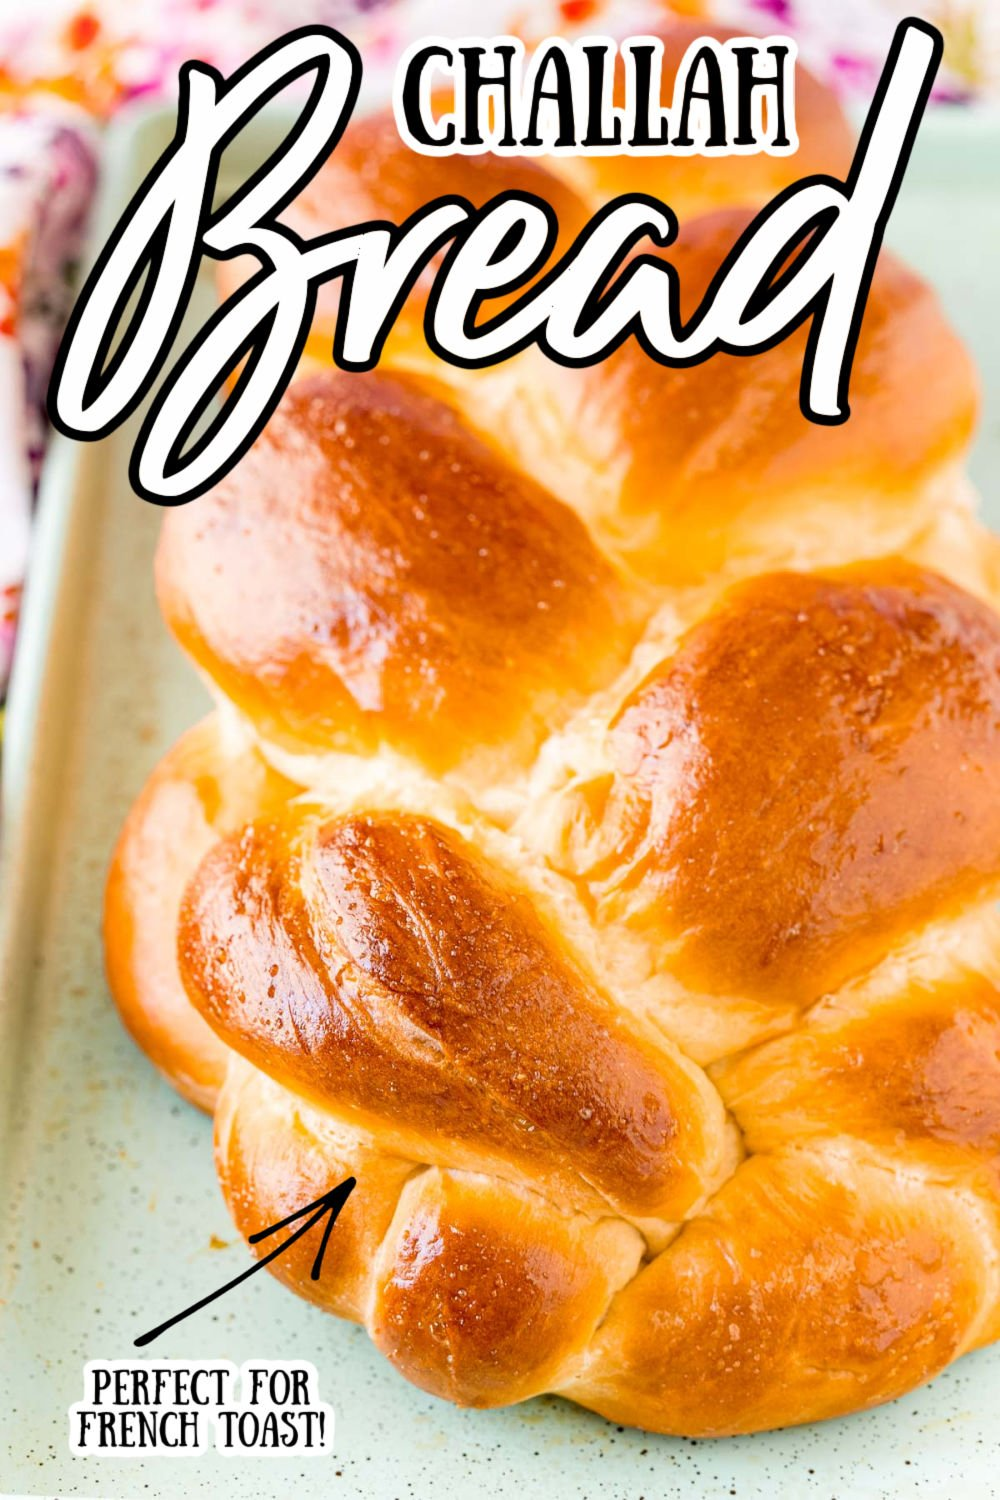 Challah Bread is a popular braided bread recipe made with a dough that's enriched with eggs and honey. It is lightly sweet and makes the most incredible French toast and grilled cheeses! via @sugarandsoulco